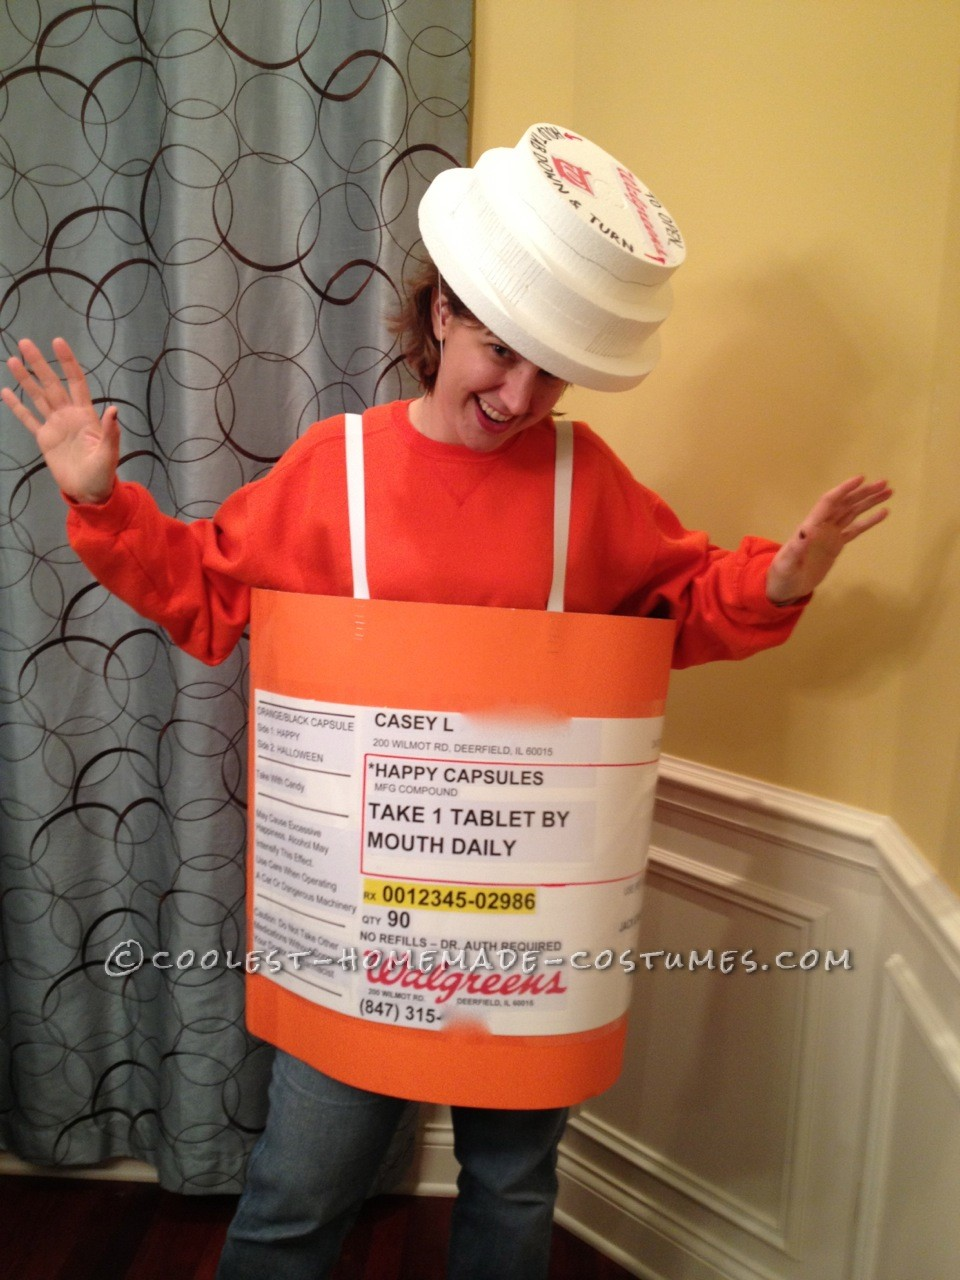 Prescription Dog Food >> Original Homemade Prescription Bottle Costume